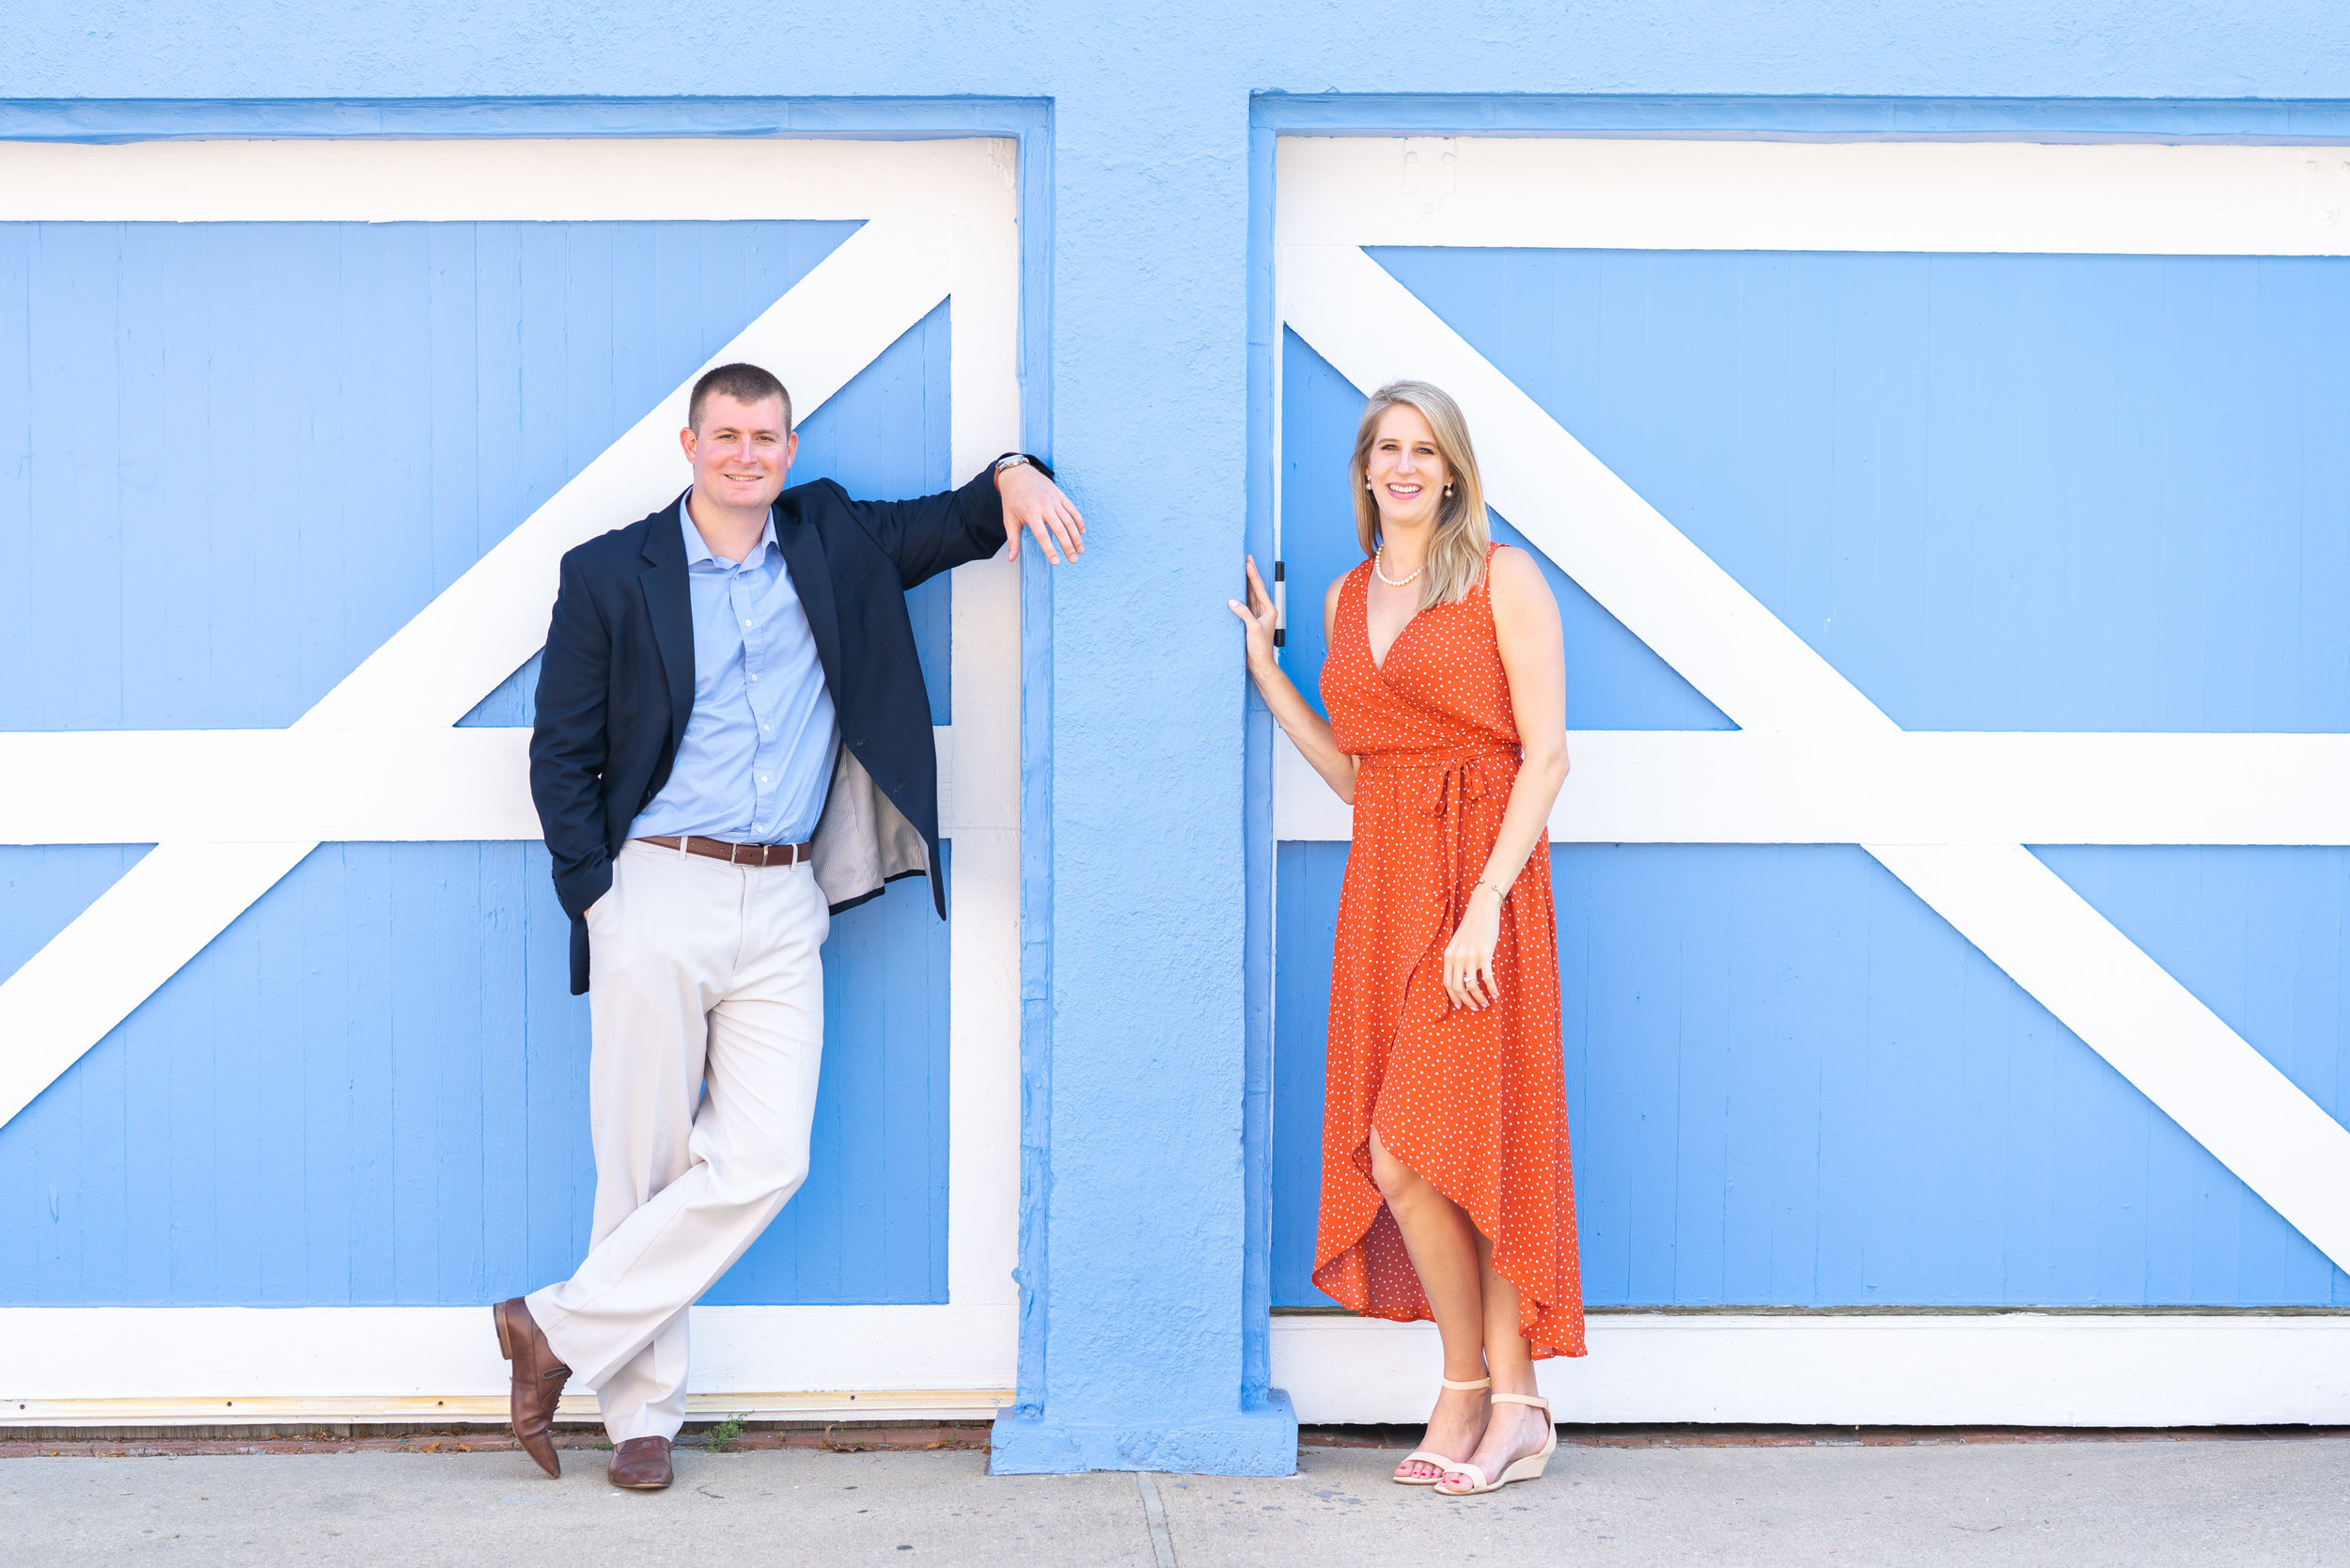 Engagement photos in Annapolis in front of blue wall